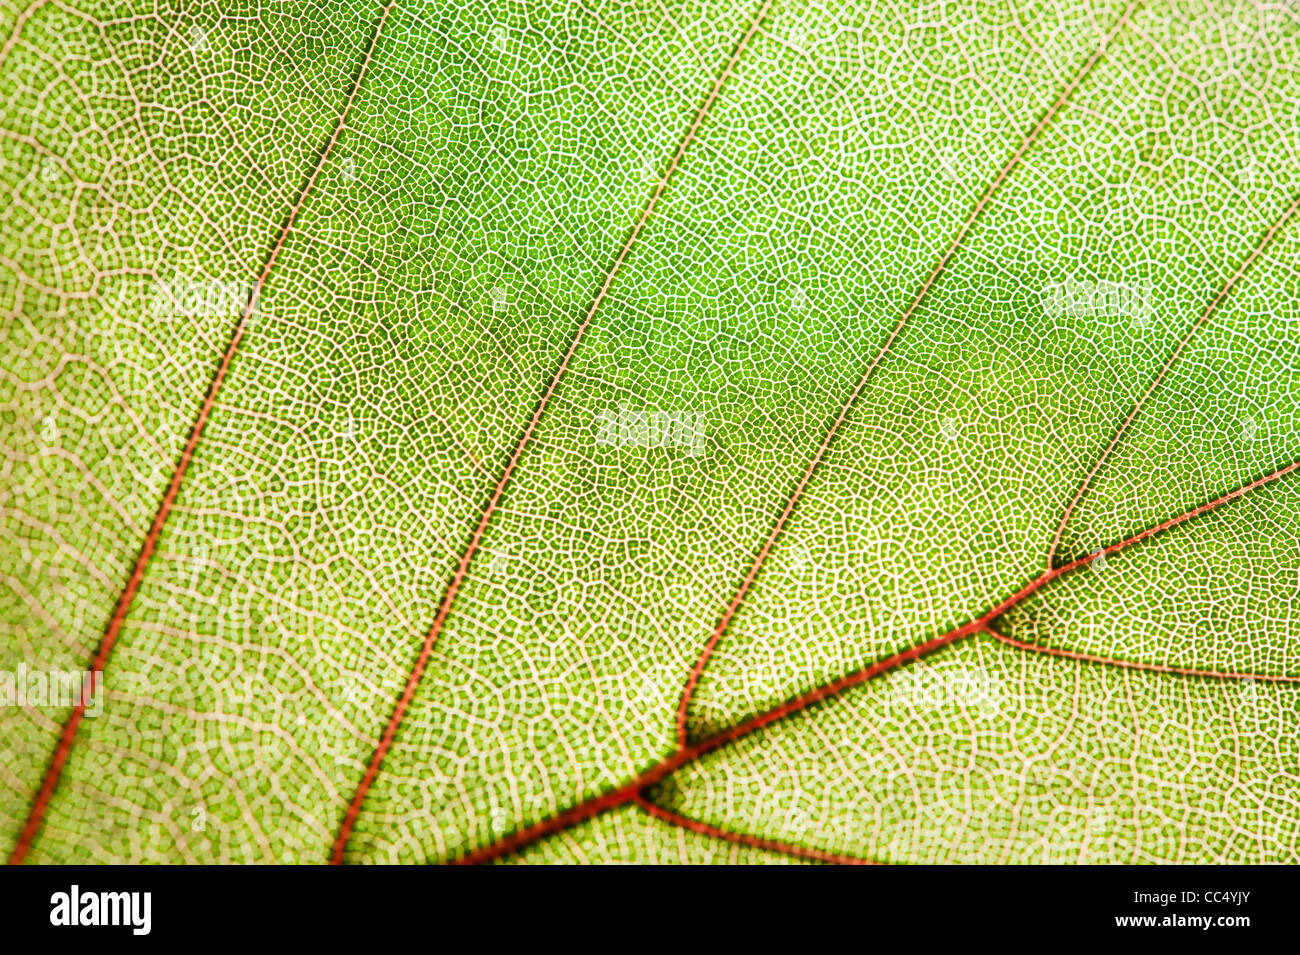 Texture de la feuille verte Photo Stock